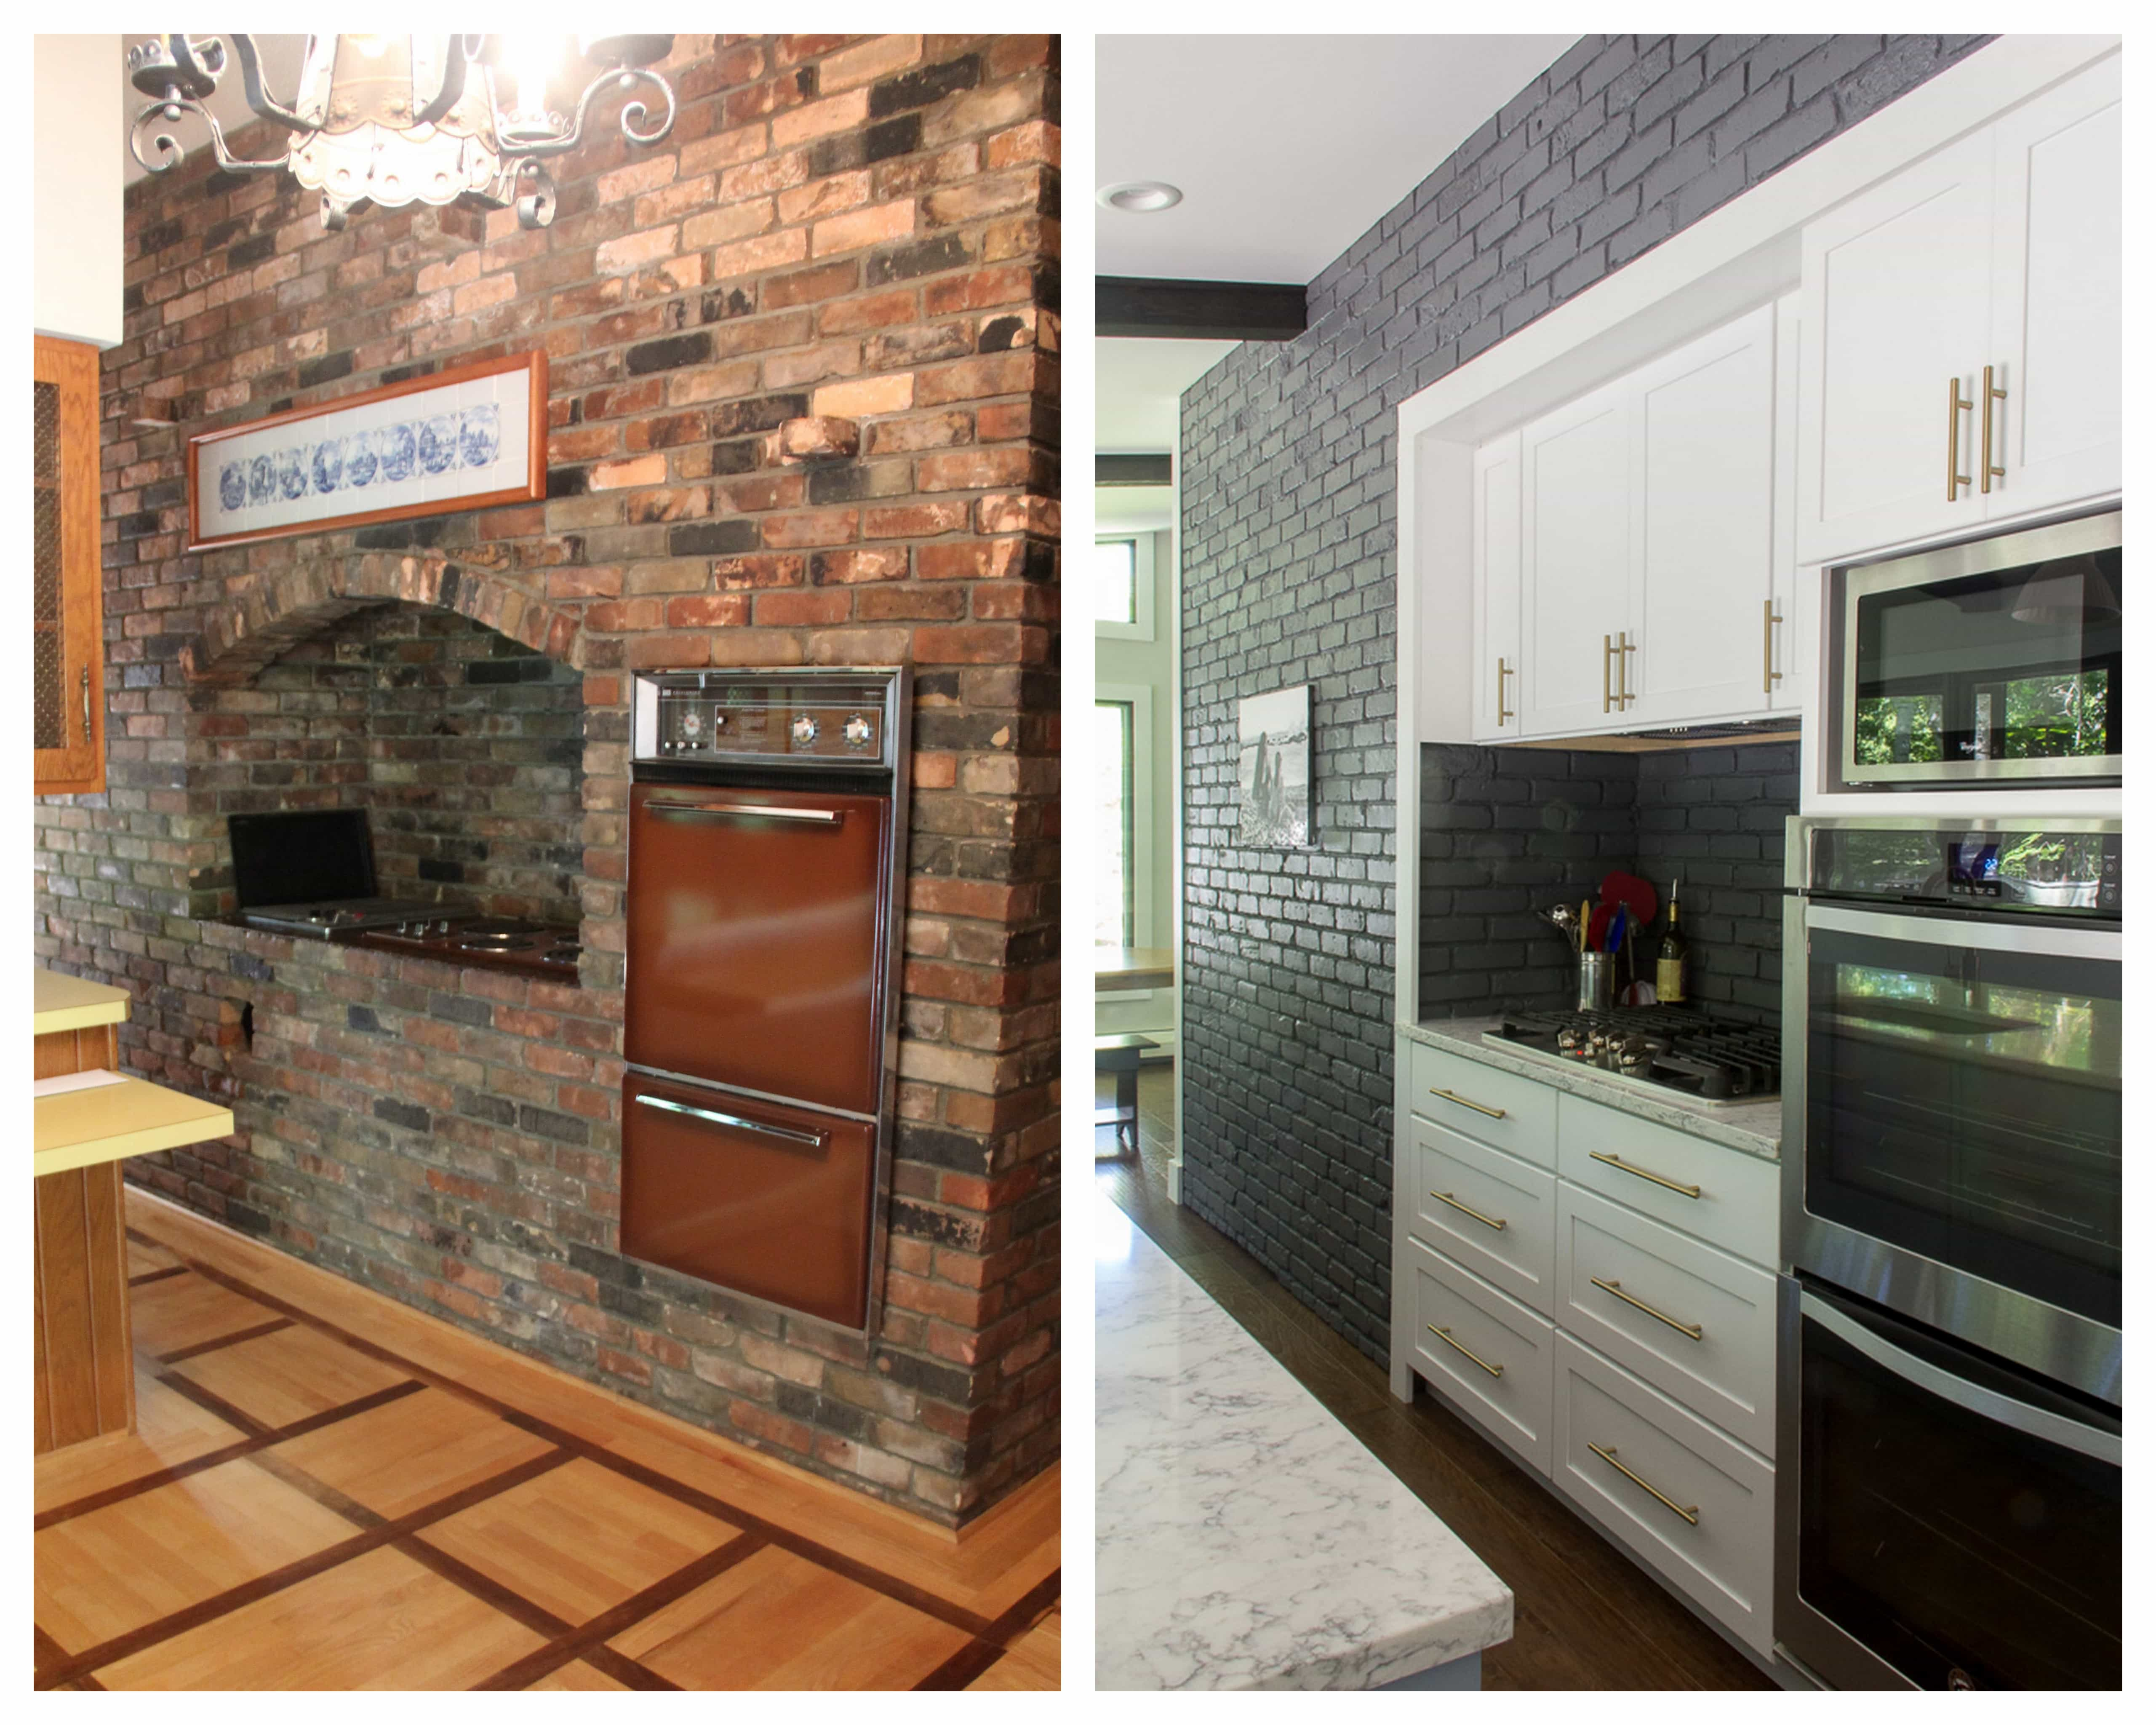 Retro Renovation Brick Kitchen Wall